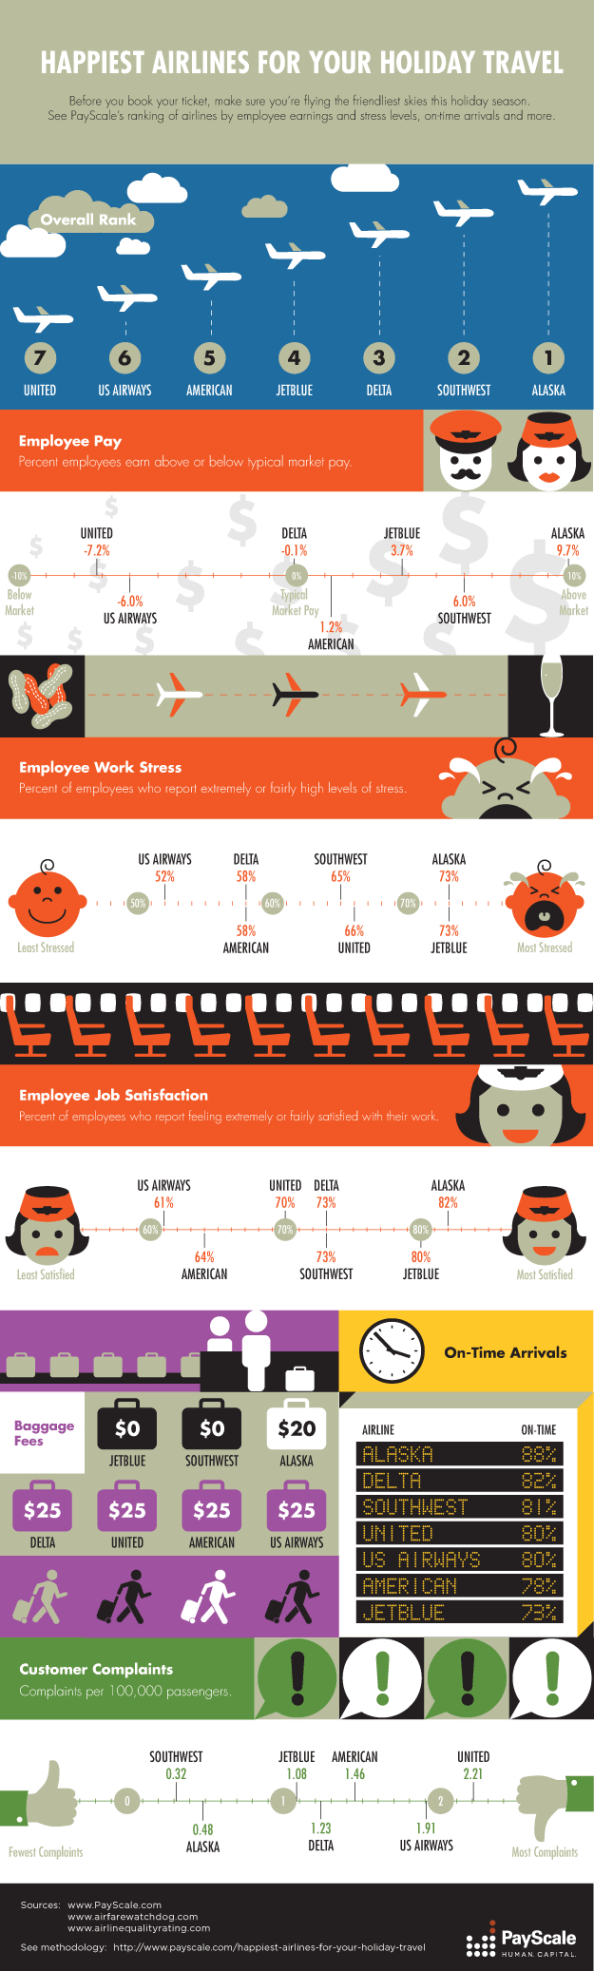 Happiest Airlines happiest airline employees holiday traffic infographic